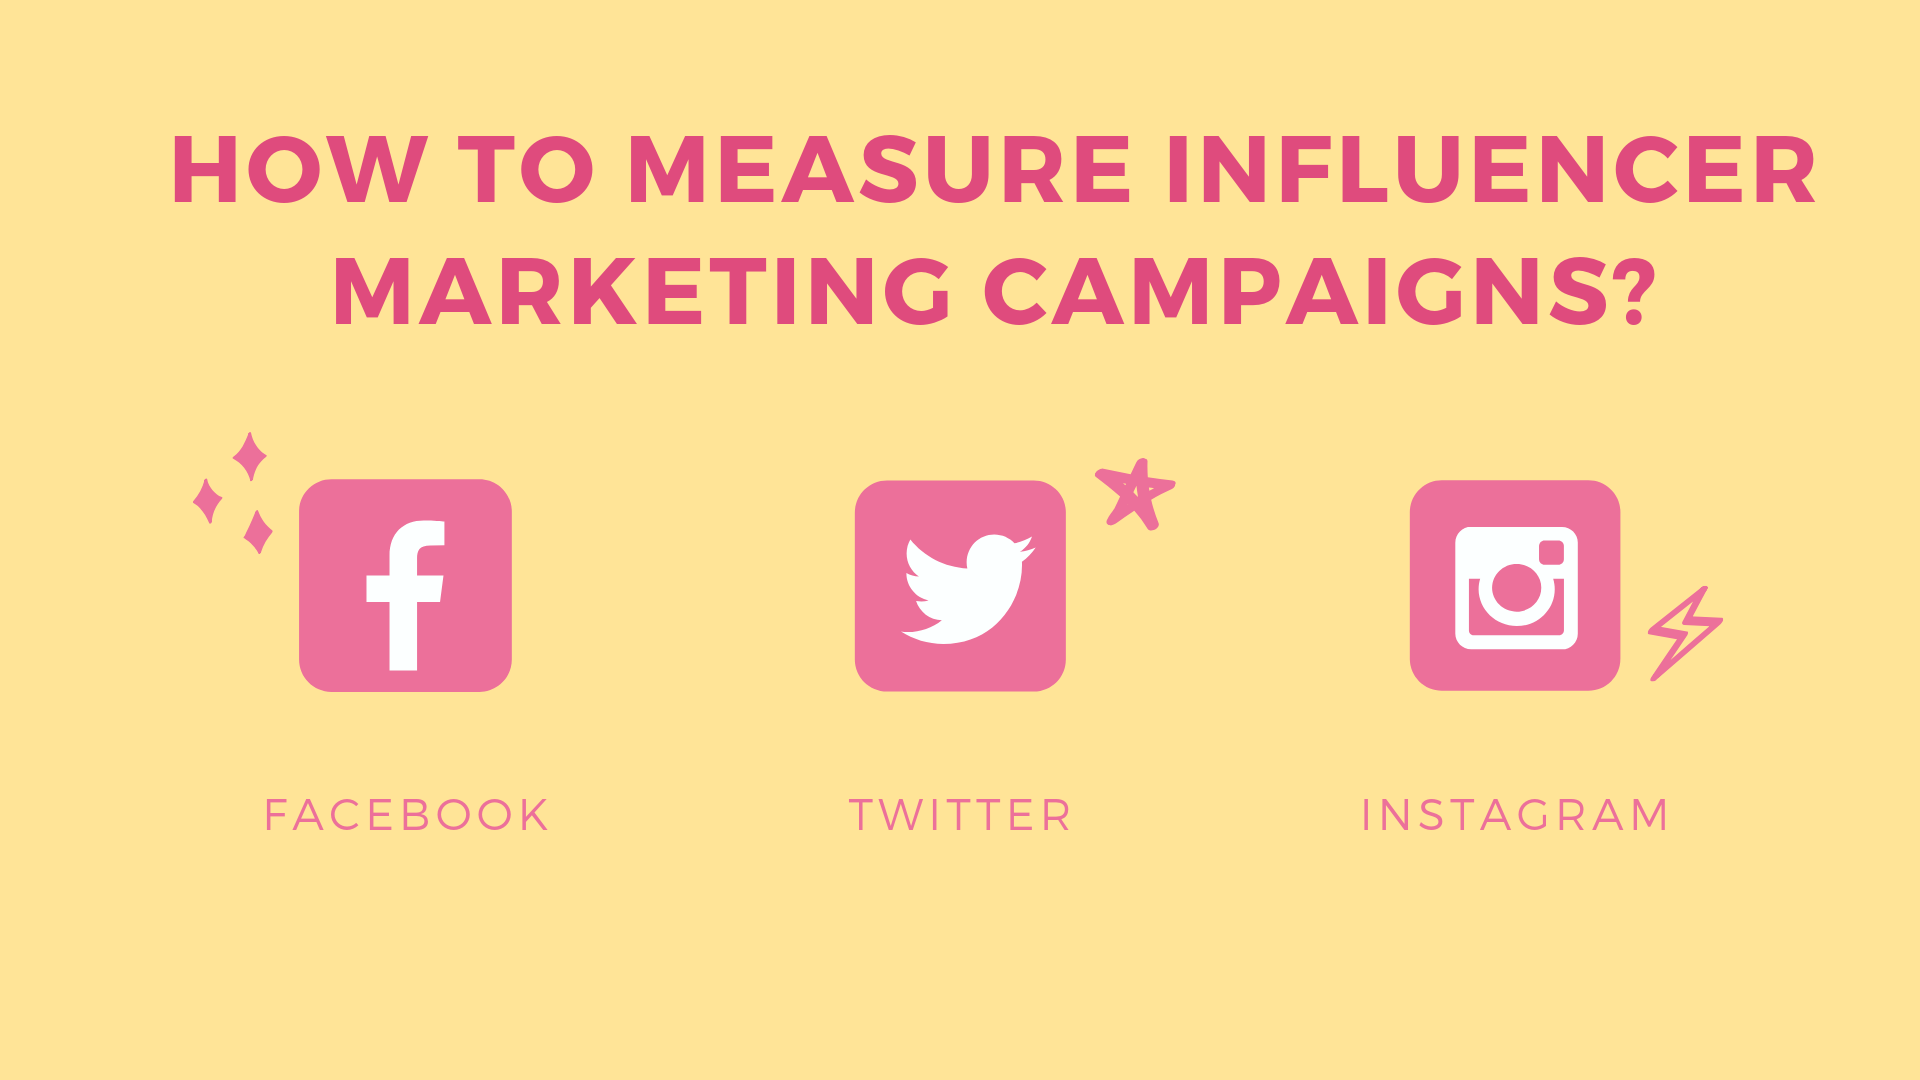 How to measure micro- and nano-influencer marketing campaigns